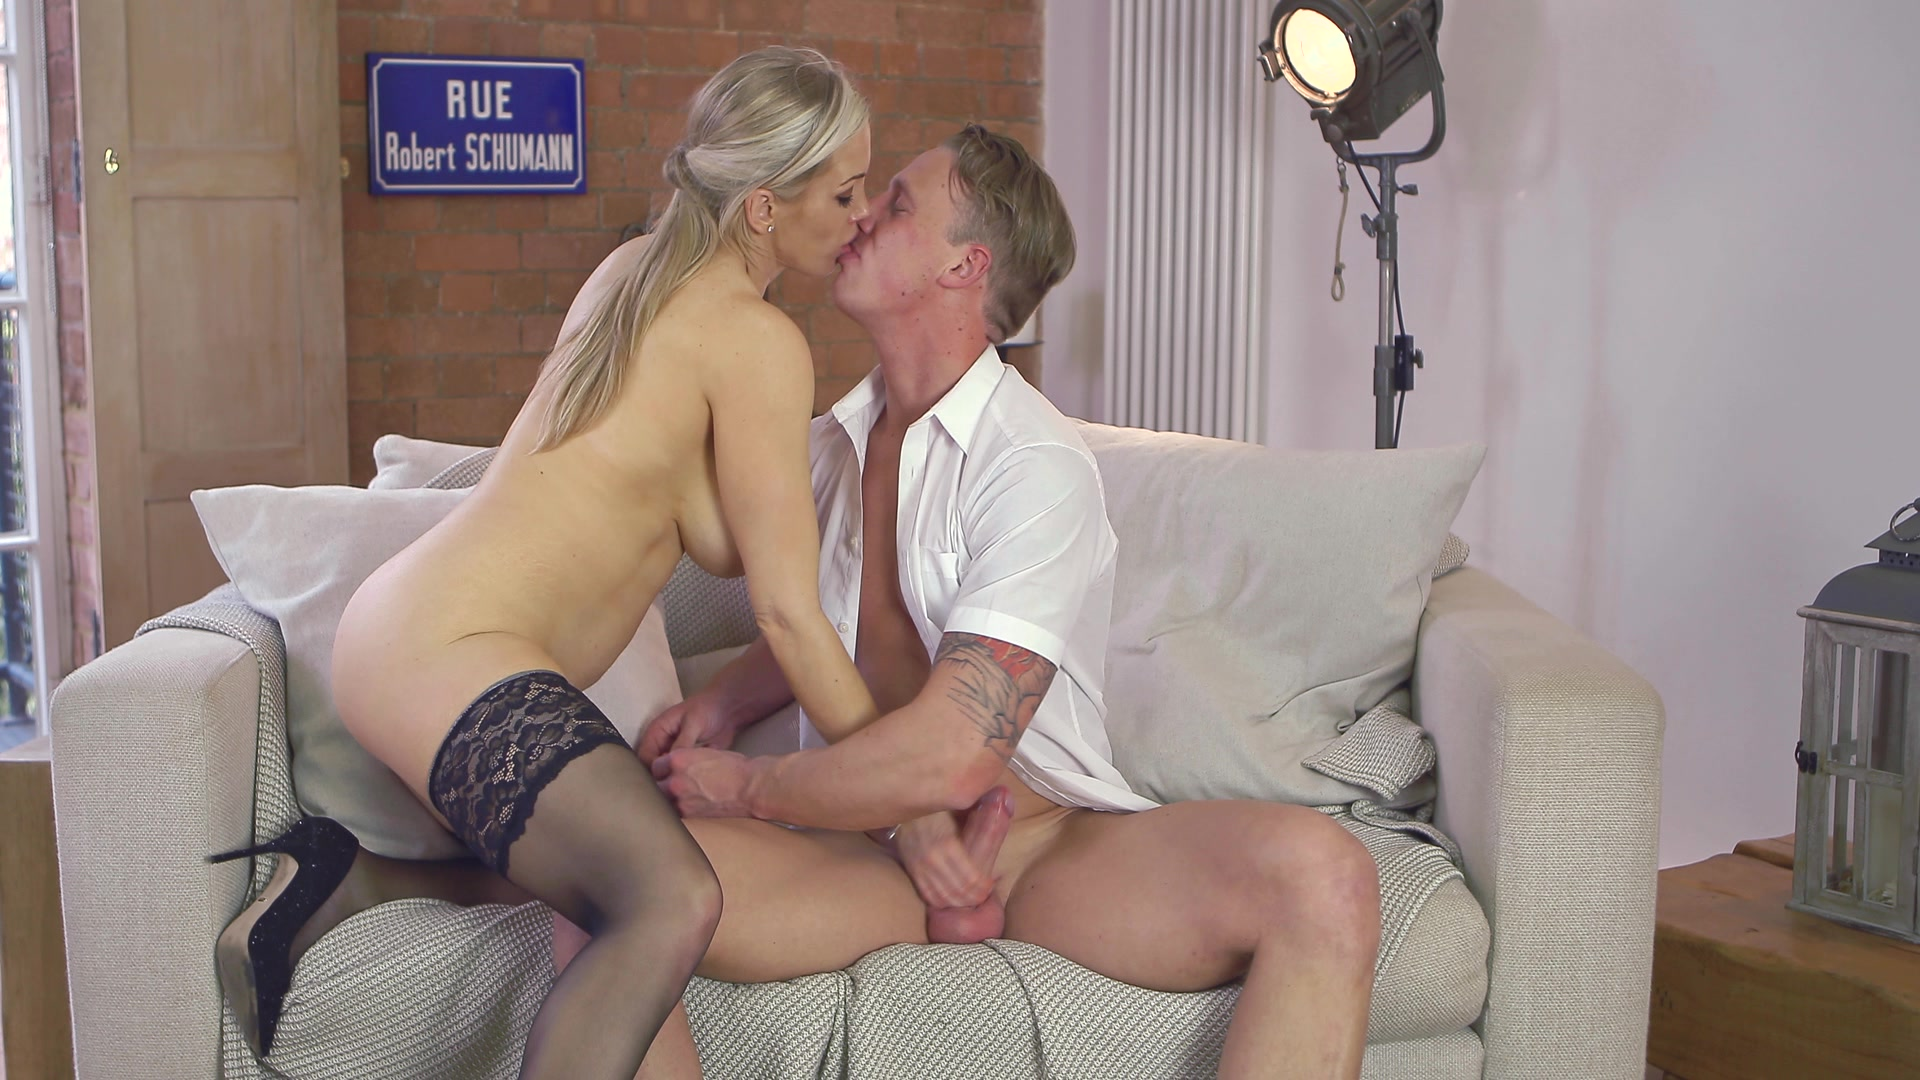 40 Years Old, My New Vicious Life, 2017 Porn Movie, Marc Dorcel Videos, Rebecca More, Nikita Bellucci, Sienna Day, Tony De Sergio, Pascal White, Ben Kelly, Max Deeds, Adrian Dimas, Sam Bourne, Luke Hardy, Adult DVD, Affairs, Love Triangles, Feature Porn, Hotwife Sex, Mature Pornstar, Pantyhose & Stocking, Threesomes Porn